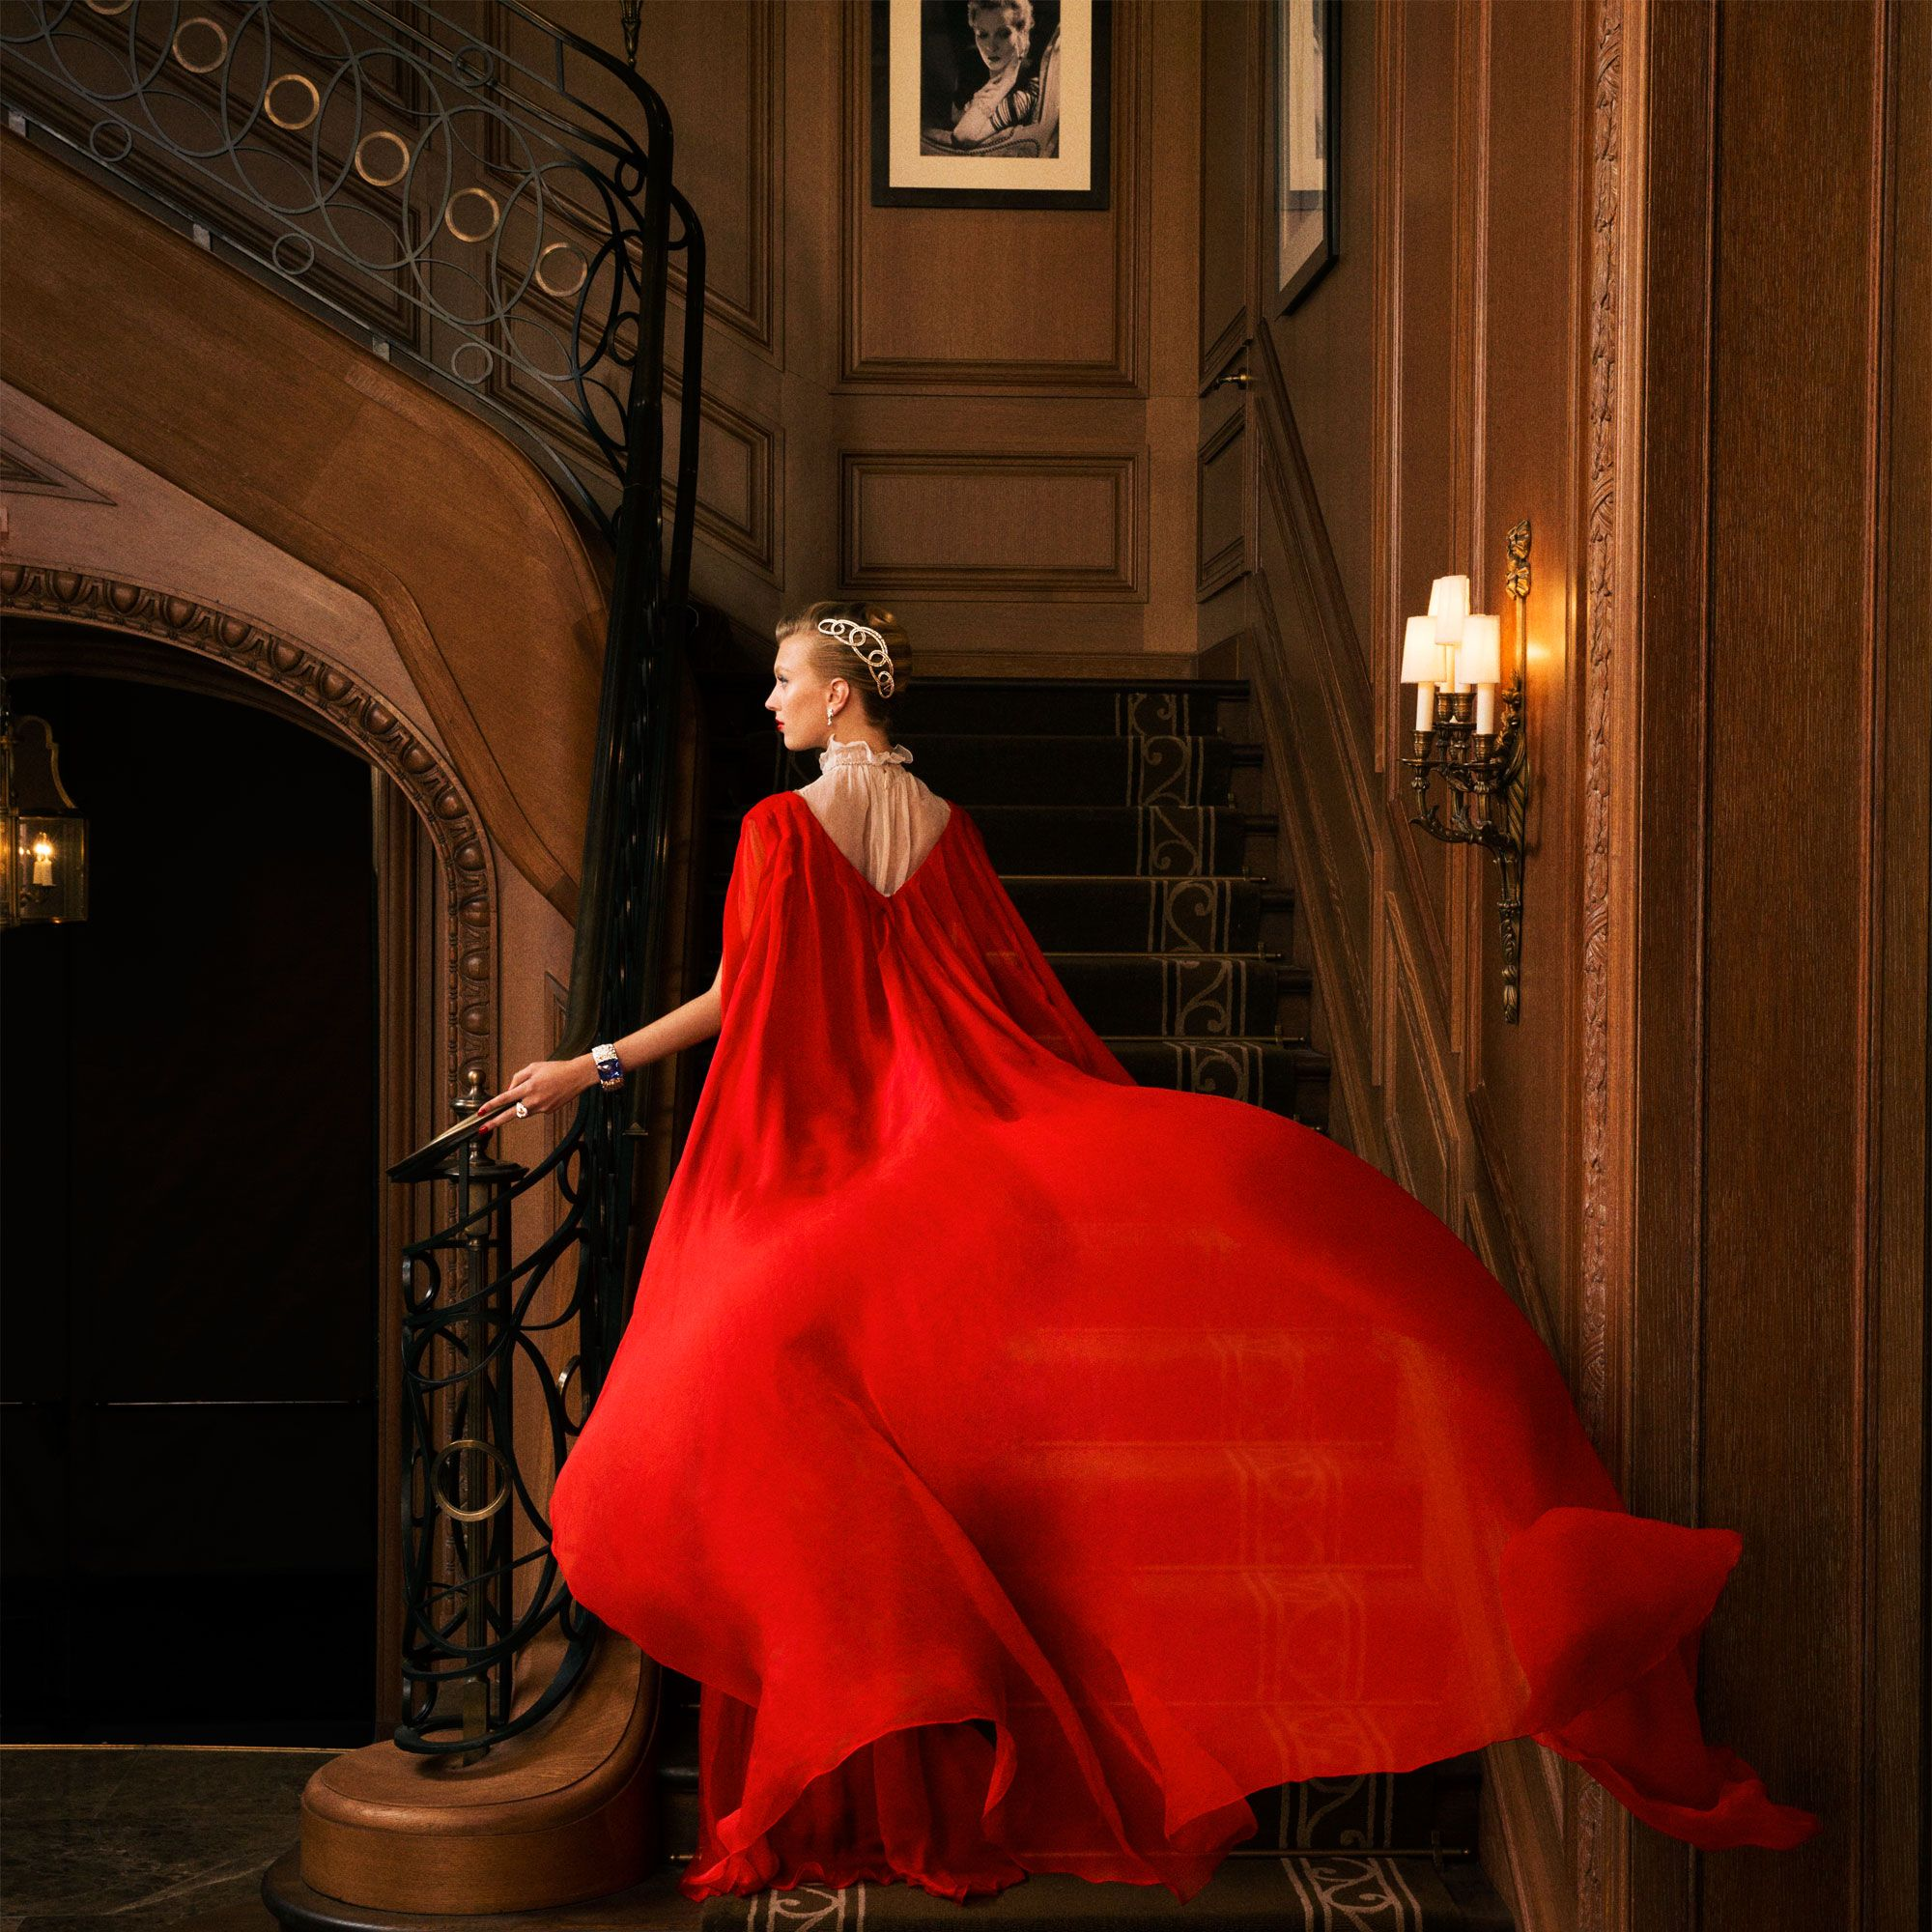 """<p>The grand staircase in the Cartier flagship, whose renovation was overseen by architect Thierry Despont. Pierre Cartier traded a natural-pearl necklace—then valued at $1 million—for the neo-Renaissance building in 1917. </p><p><em data-redactor-tag=""""em"""" data-verified=""""redactor""""><strong data-redactor-tag=""""strong"""" data-verified=""""redactor"""">Valentino</strong> Haute Couture dress and bodysuit, prices upon request, <a href=""""http://www.valentino.com/us"""" target=""""_blank"""" data-tracking-id=""""recirc-text-link"""">valentino.com</a>&#x3B; <strong data-redactor-tag=""""strong"""" data-verified=""""redactor"""">Cartier</strong> tiara, earrings, bracelet, and ring, prices upon request, 800-CARTIER. </em></p>"""